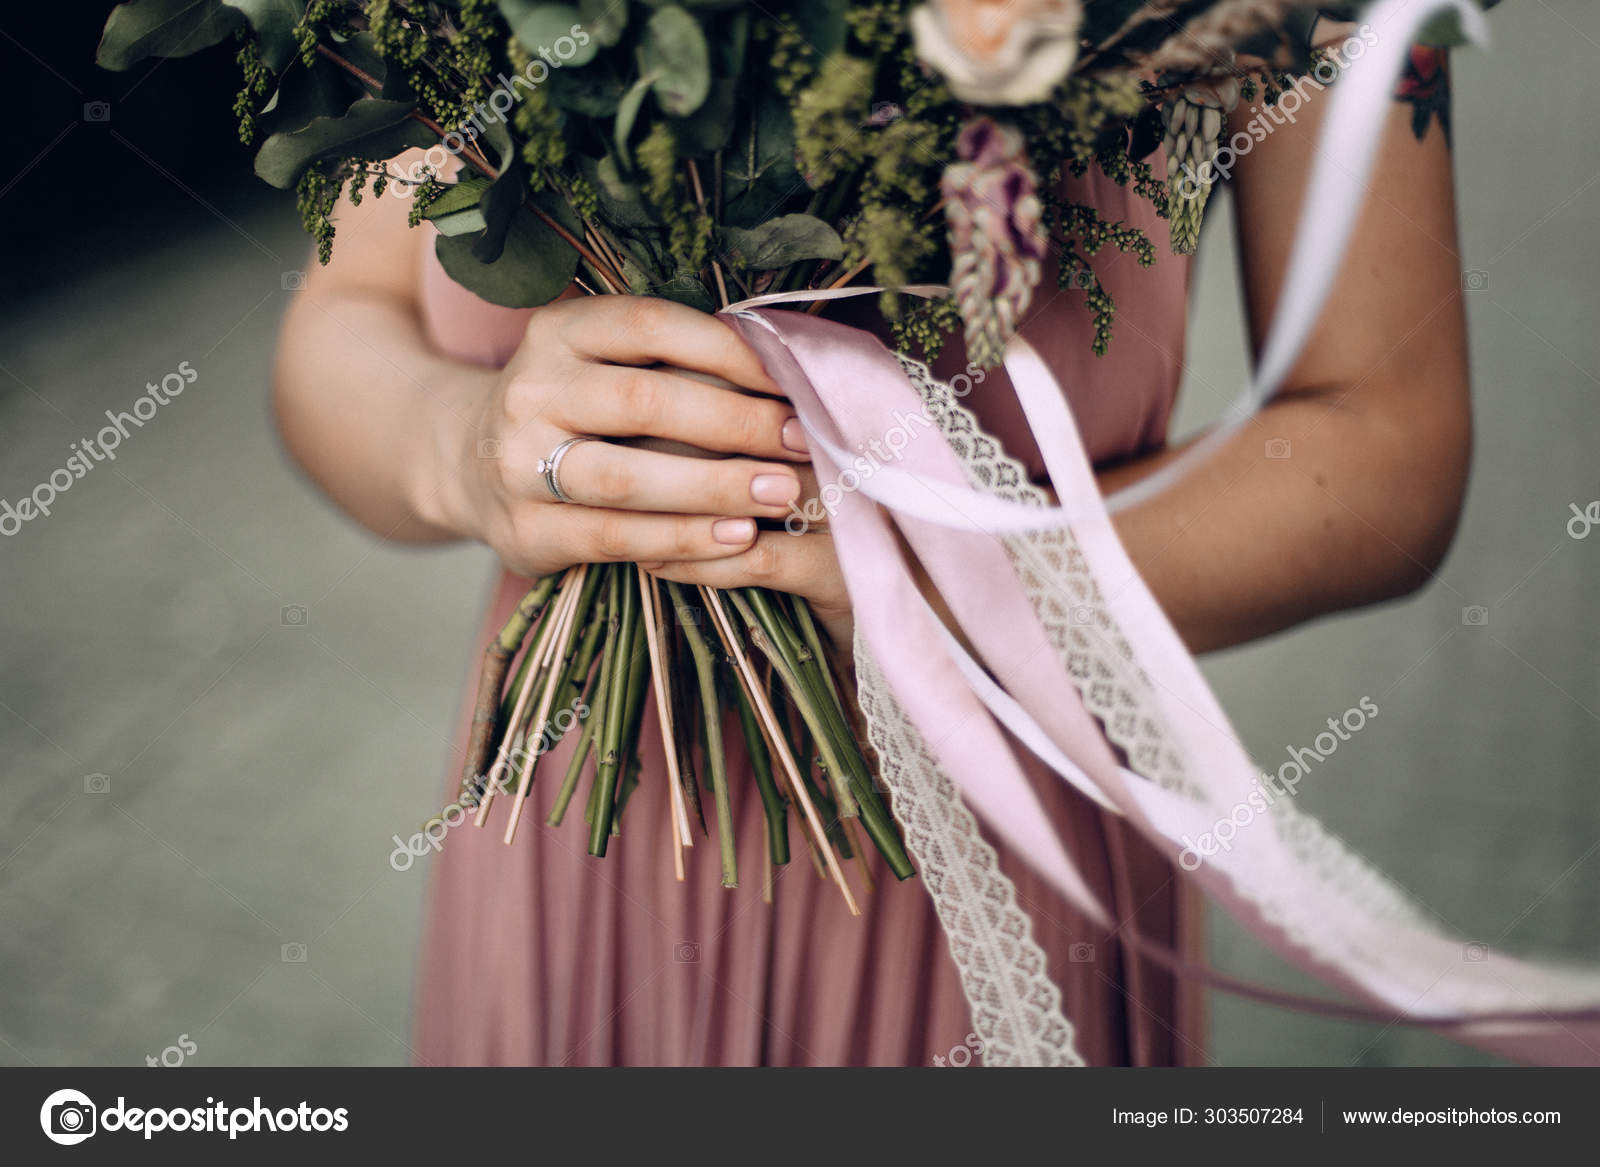 Happy And Smiling Woman With Bouquet Of Flowers In A Pink Wedding